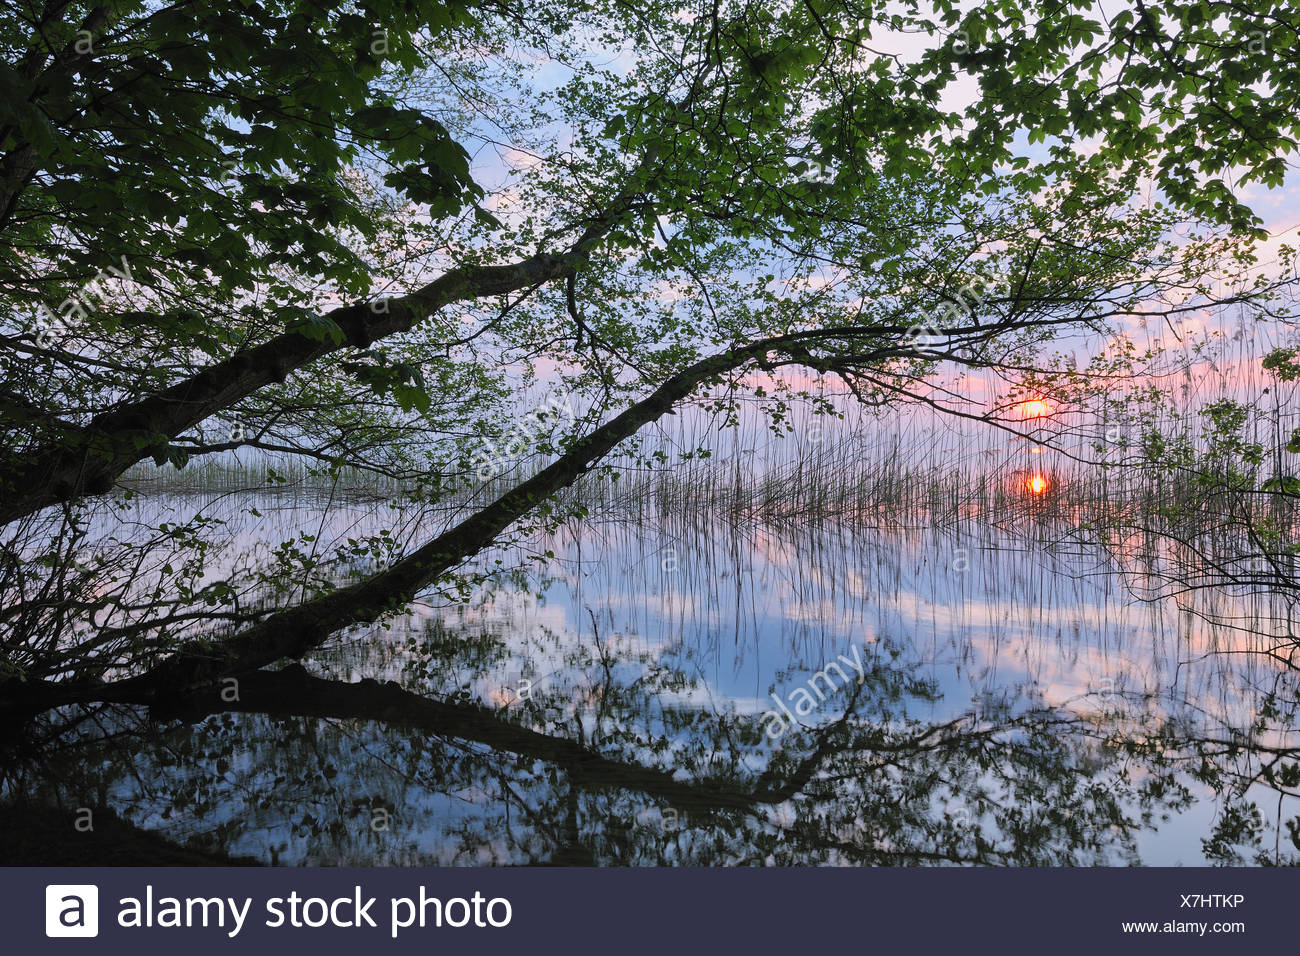 Germany, Mecklenburg-Vorpommern, Mecklenburger Seenplatte, Plau am See, View of sunrise with reeds and trees at lakeshore - Stock Image